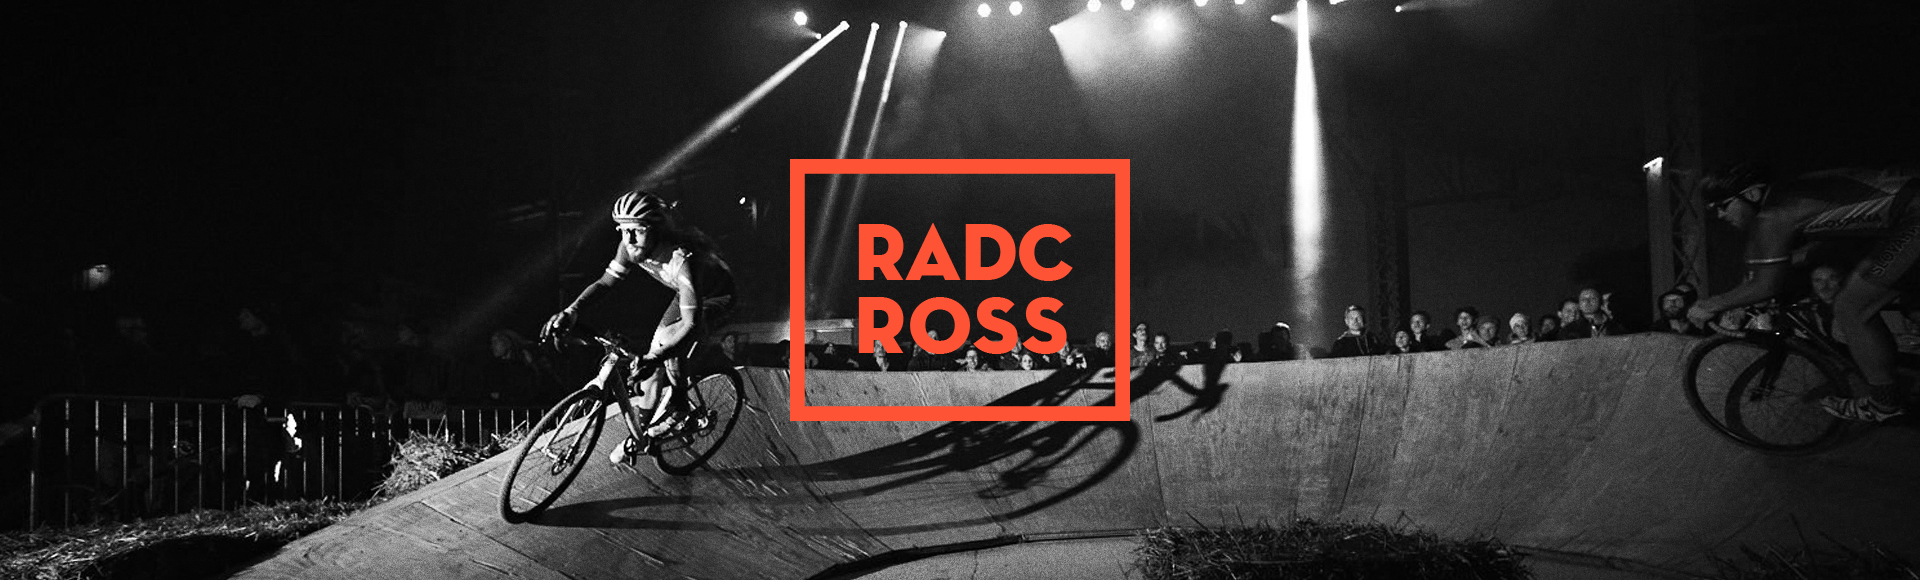 RAD CROSS 2018 rad race